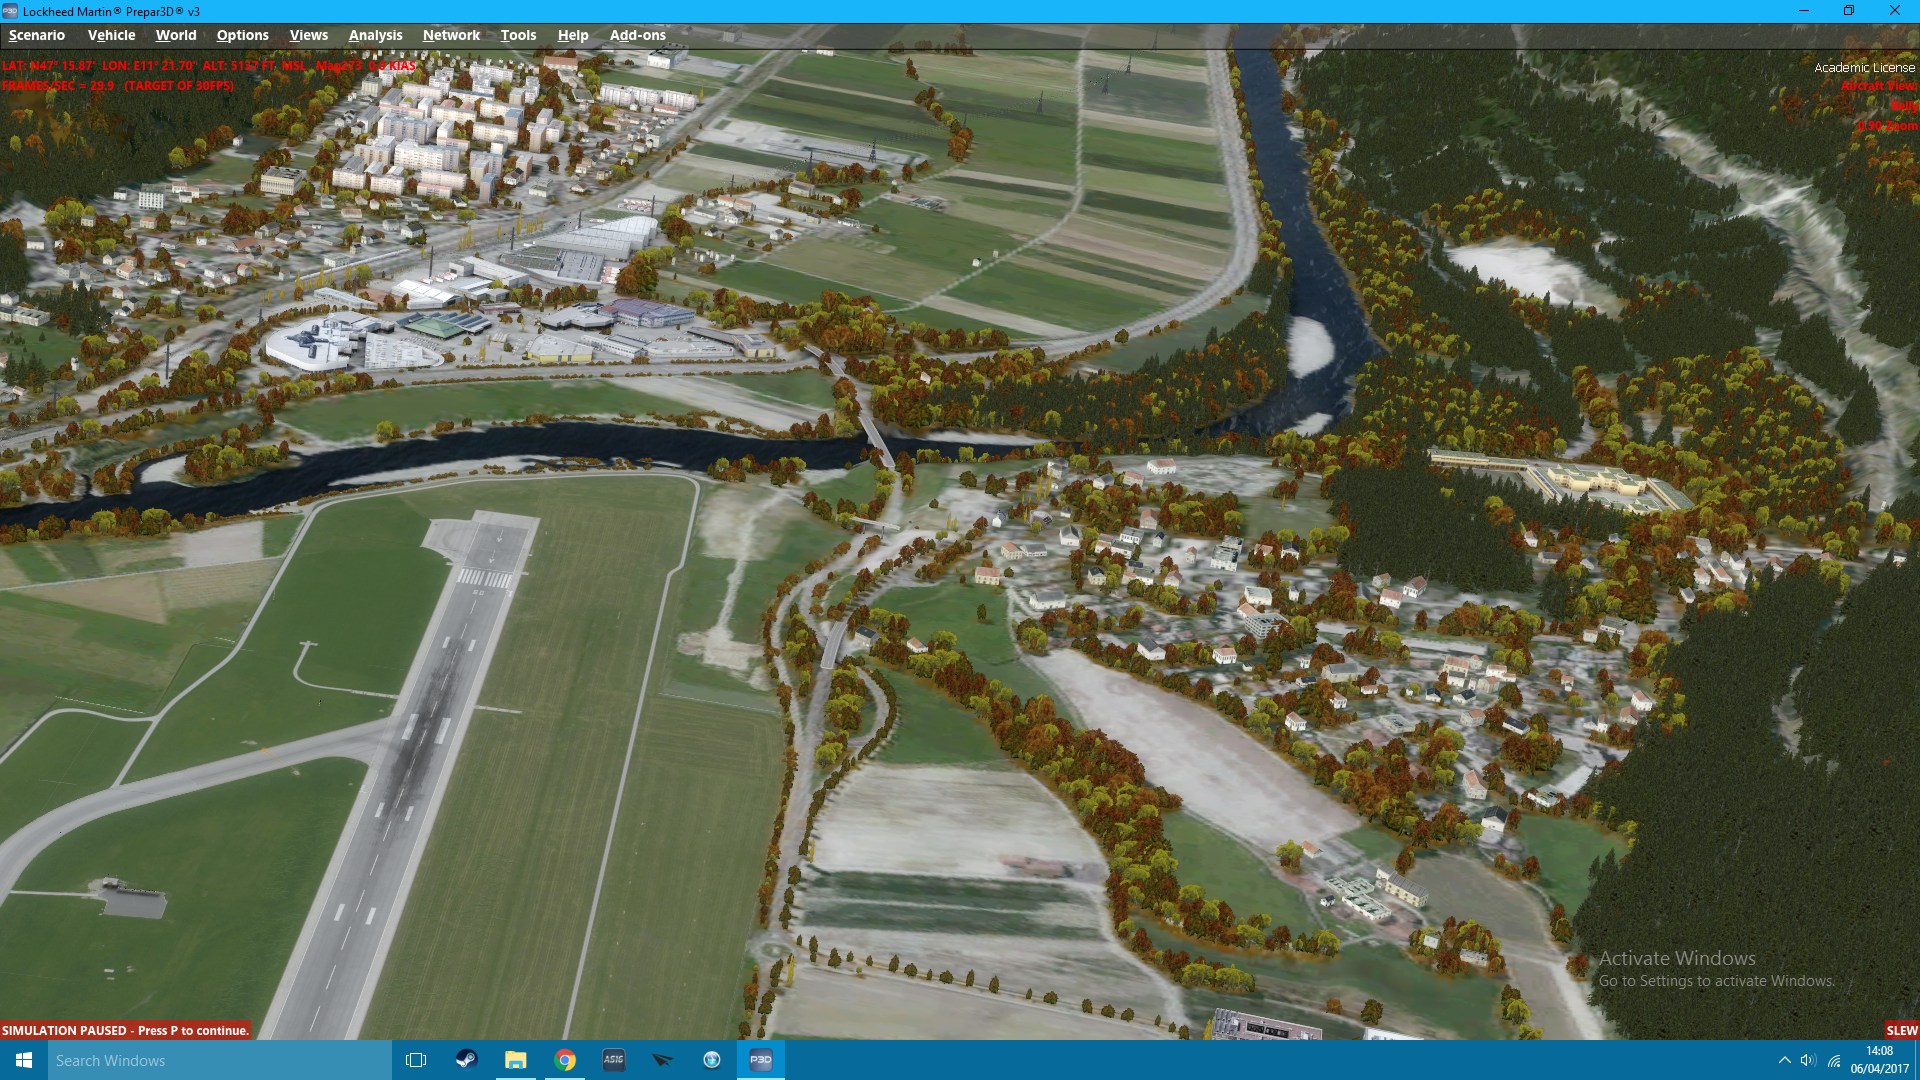 P3D V3 - Blurry ground/Terrain Issues With Orbx  - Hardware